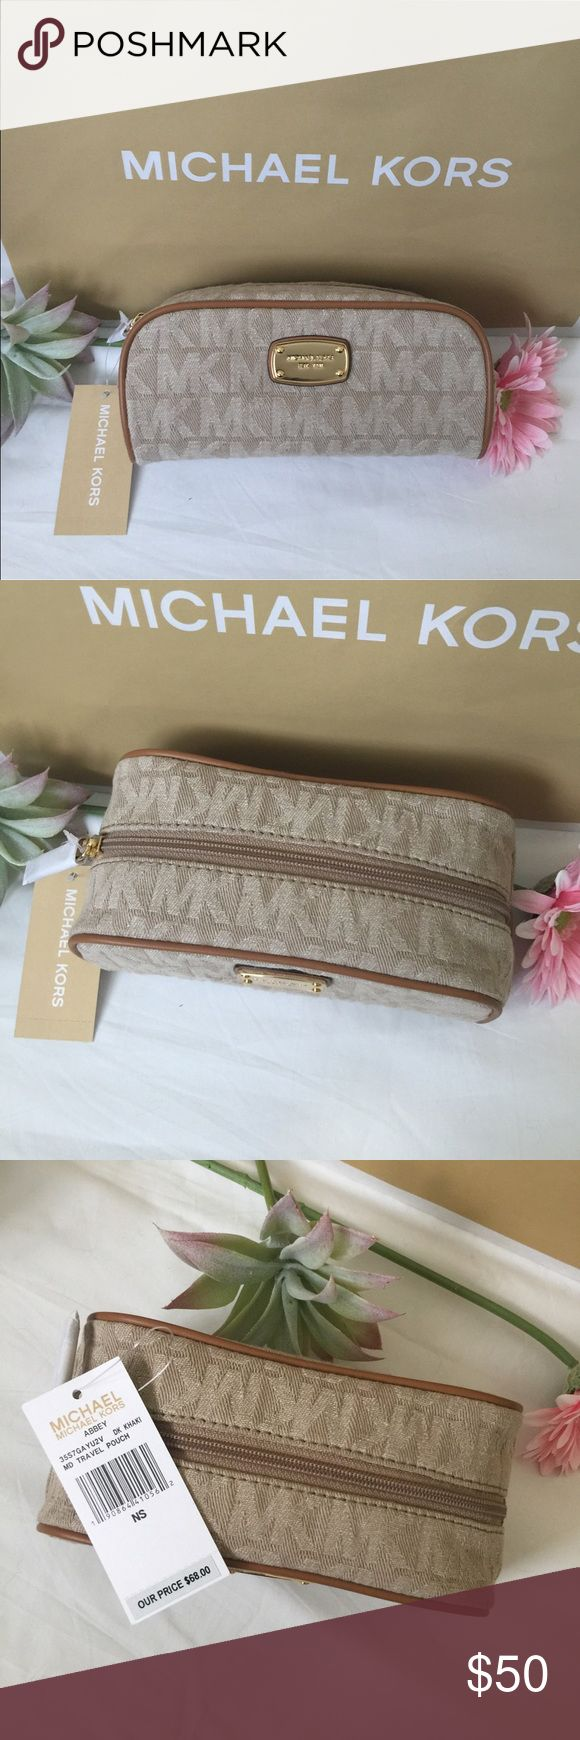 """Michael Kors Cosmetic Bag. Price firm. Michael Kors cosmetic bag. Measures 7.5"""" L x 3.5"""" H x 3.5"""" D It is denim material with luggage leather trim Zip around style with leather pull Gold-tone designer plate on front  Flat bottom to make stand up a breeze Interior: one slip pocket with leather MK patch Care card included Color-Khaki Michael Kors Bags Cosmetic Bags & Cases"""